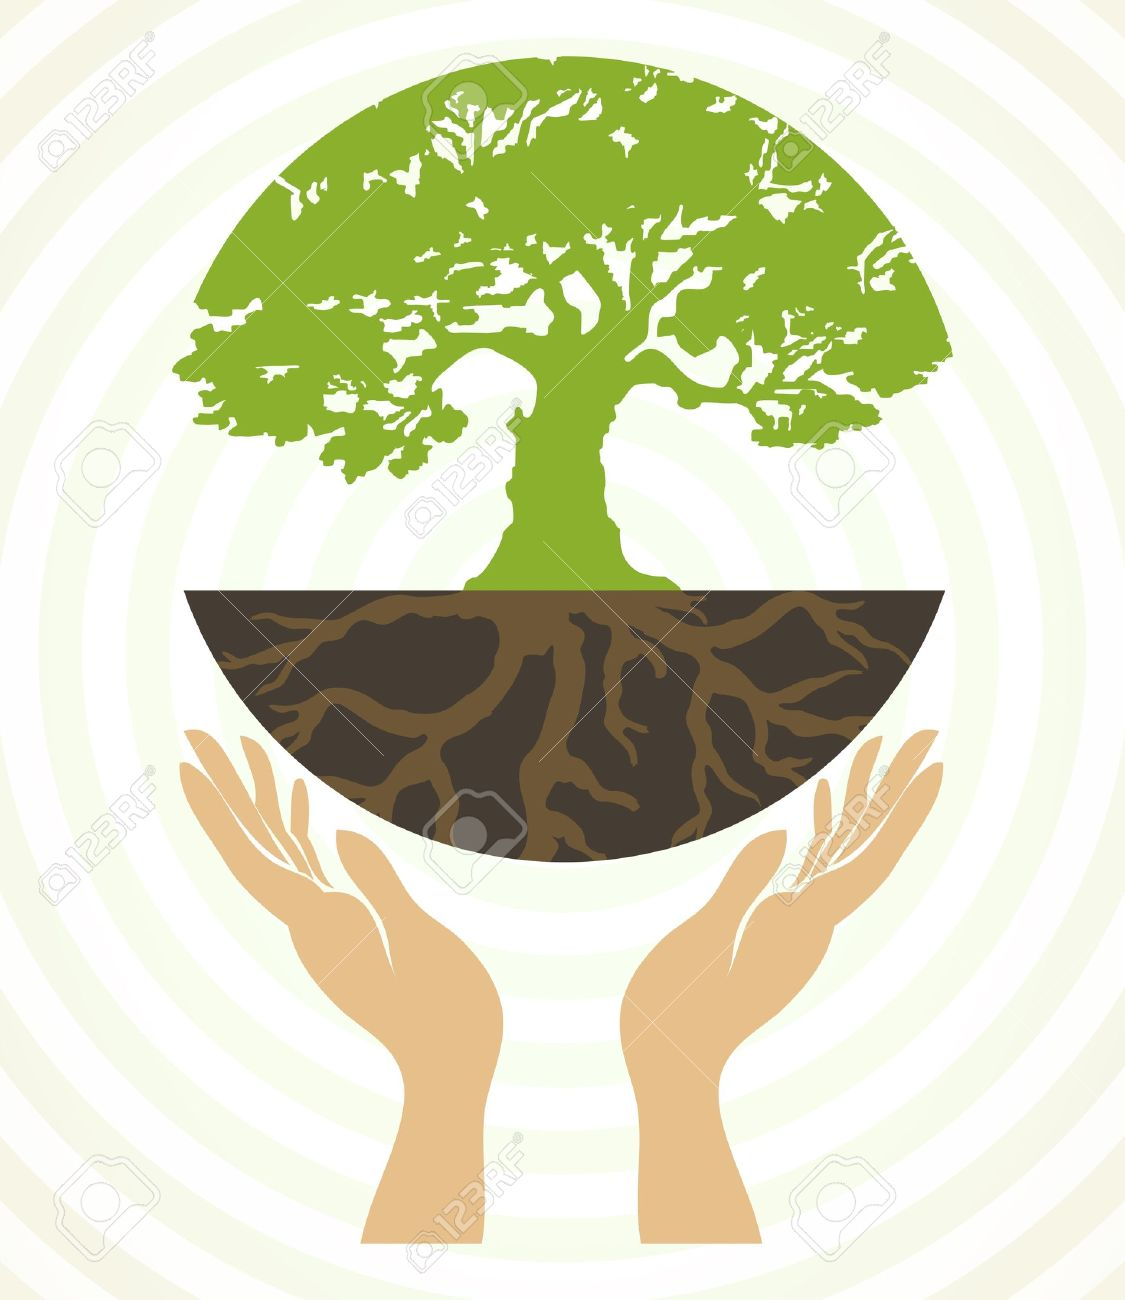 Tree icons with hands Stock Vector - 14714190